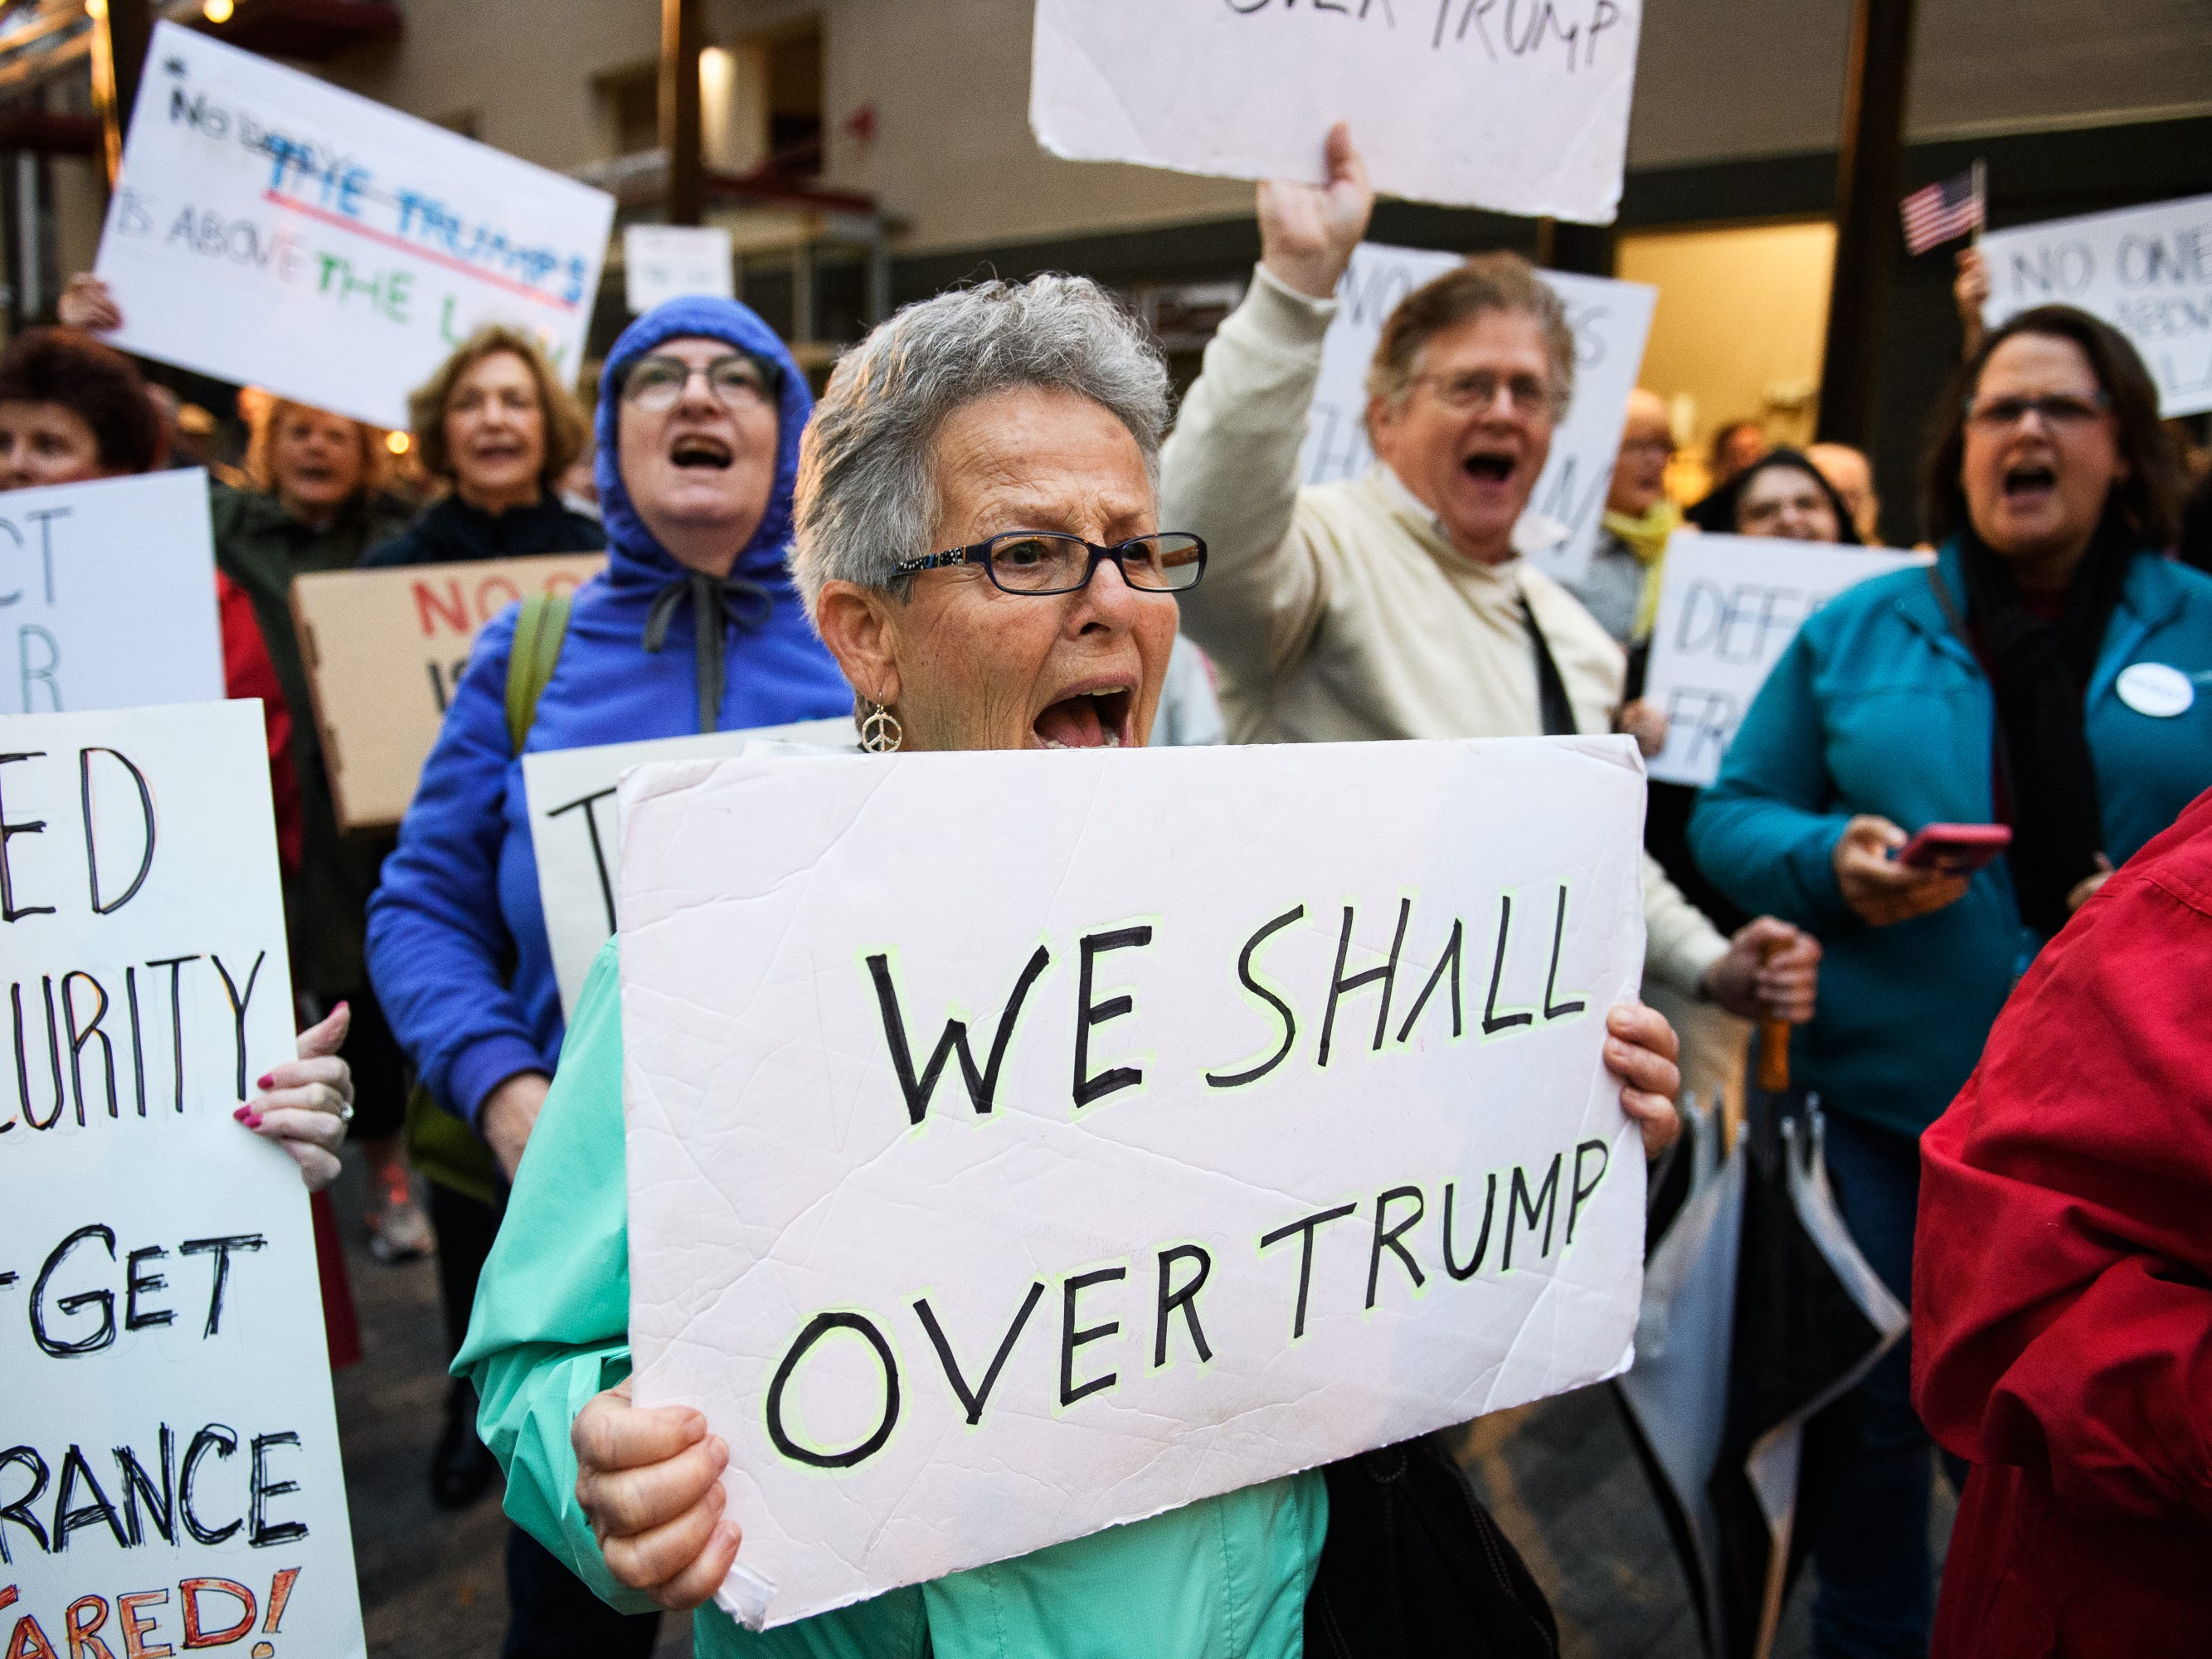 Dianne Perry participates in a protest over fears that President Donald Trump is derailing the Mueller investigation at One City Plaza in downtown Greenville on Thursday, Nov 8, 2018.